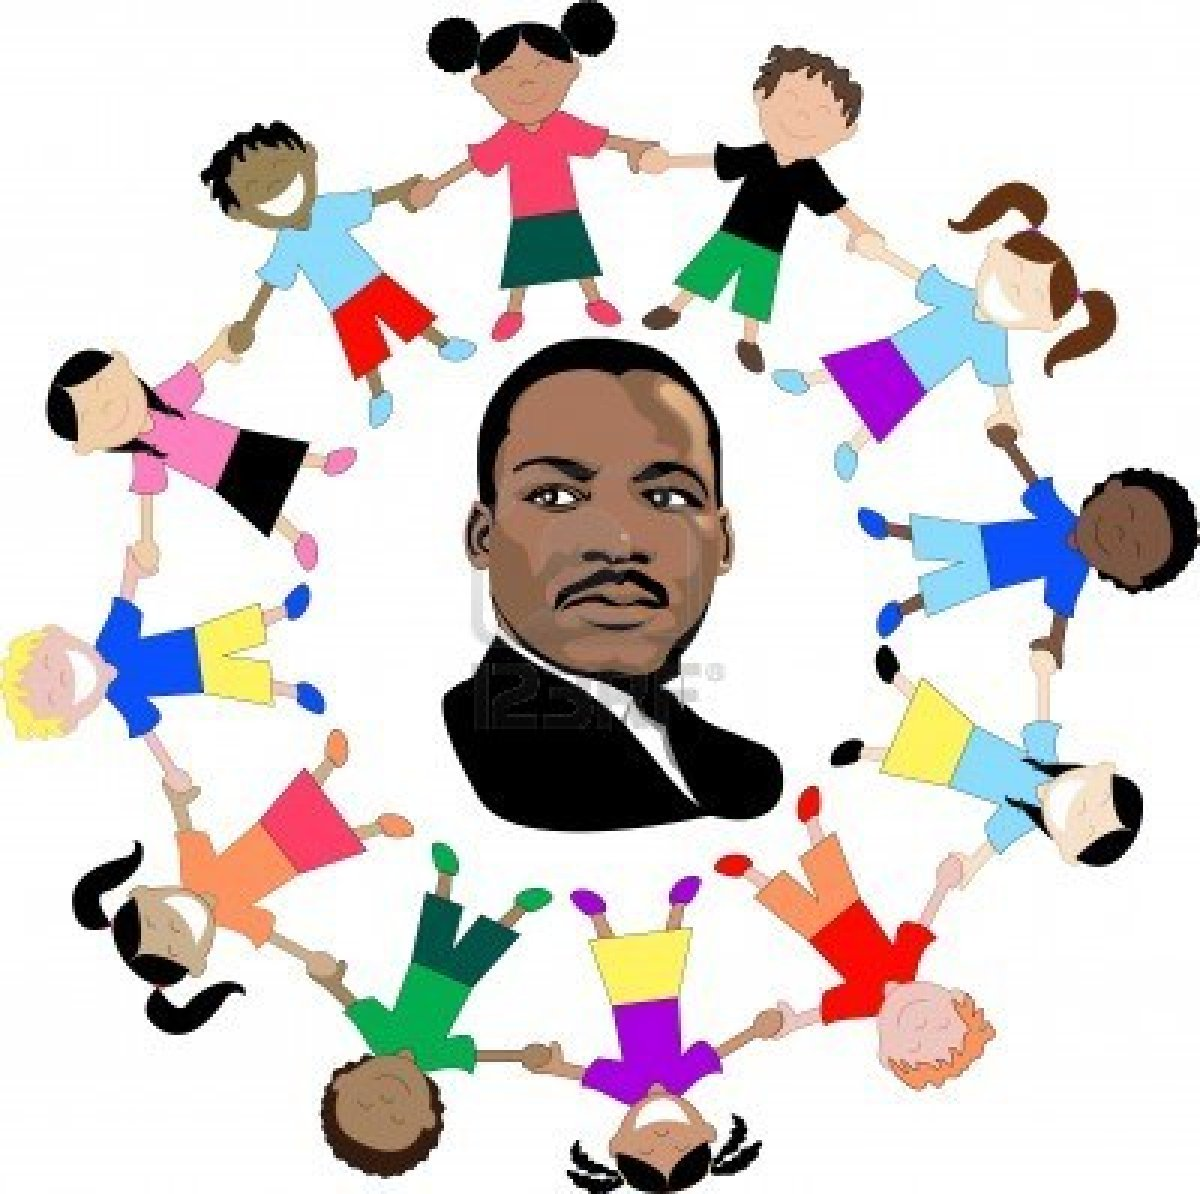 Holydays clipart martin luther king jr Jr %20Day%20clipart King Clipart Day